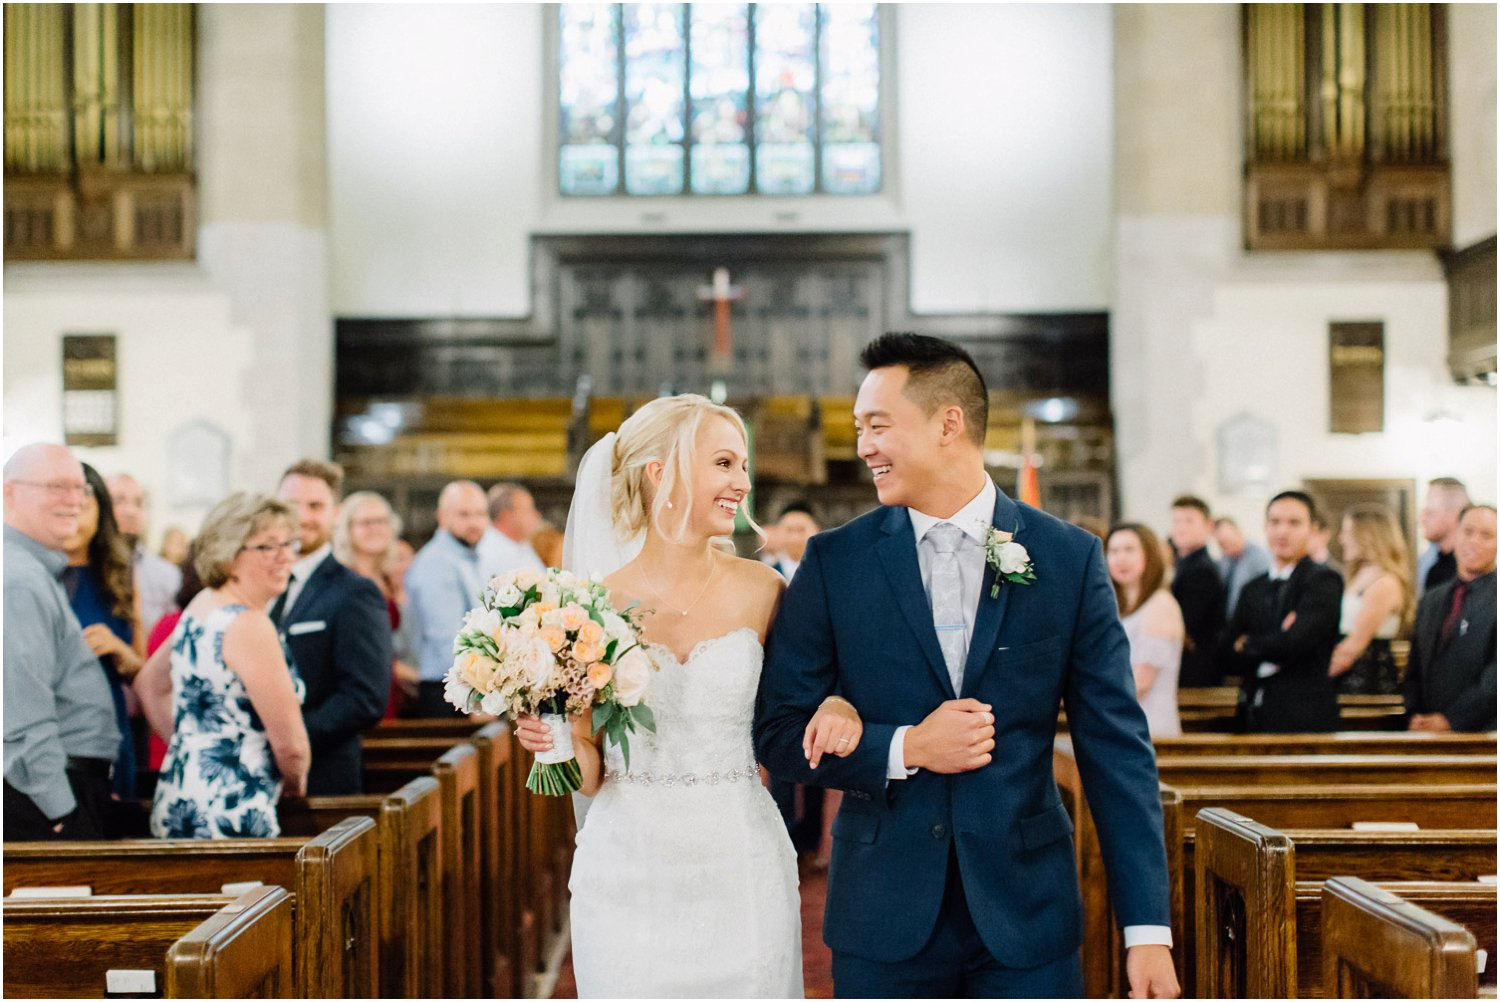 Knox united church wedding